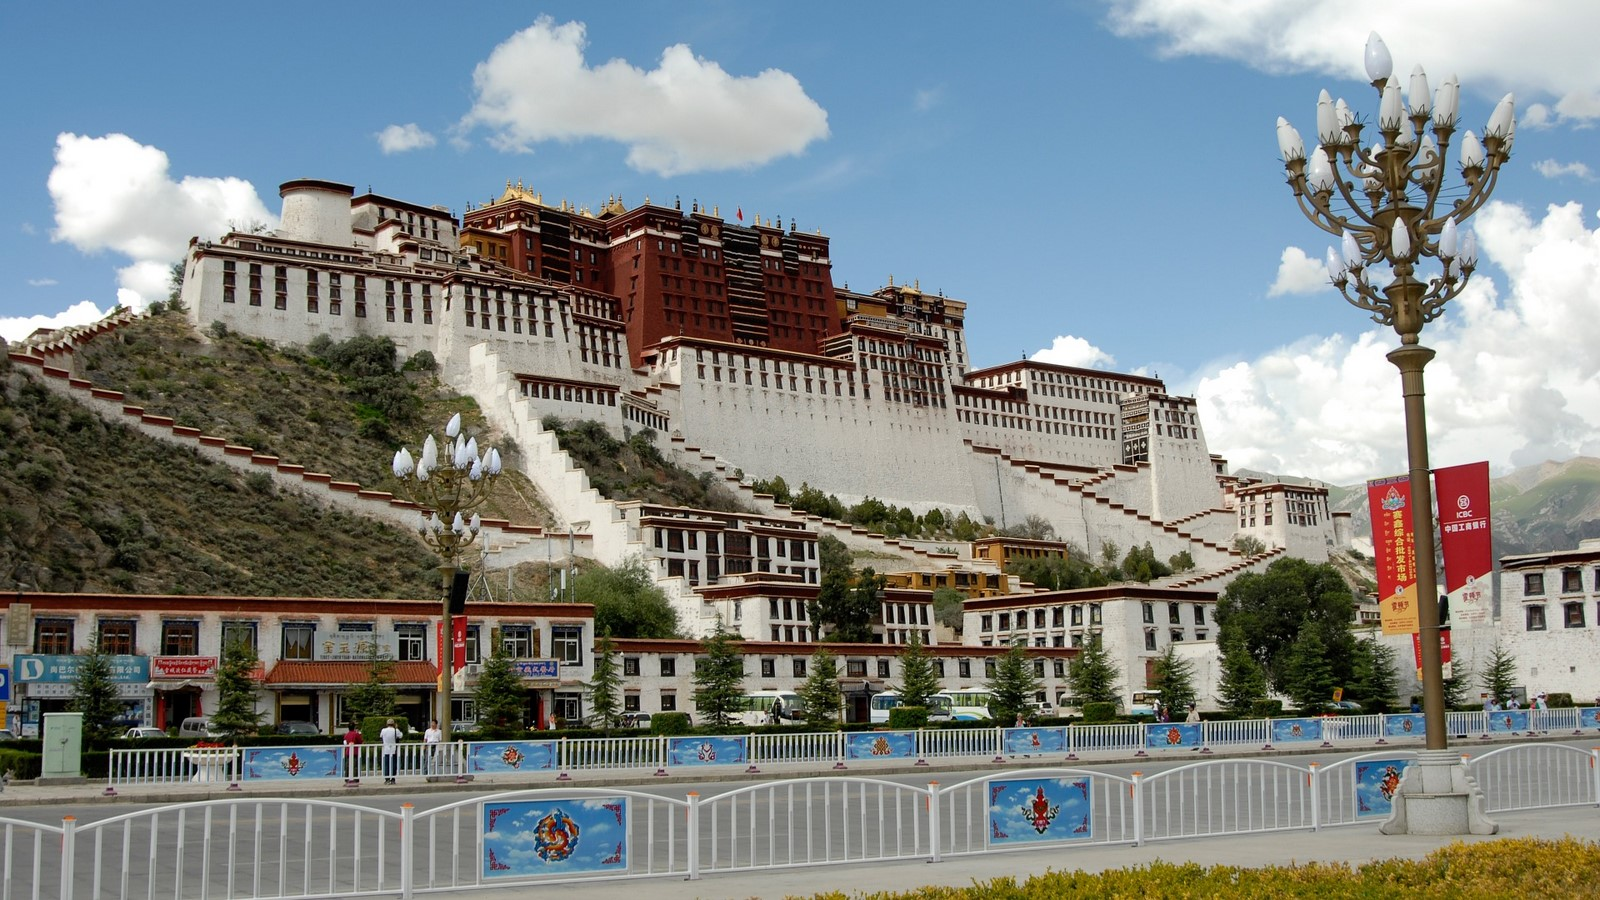 10 Things you did not know about Potala Palace,Tibet - Sheet1